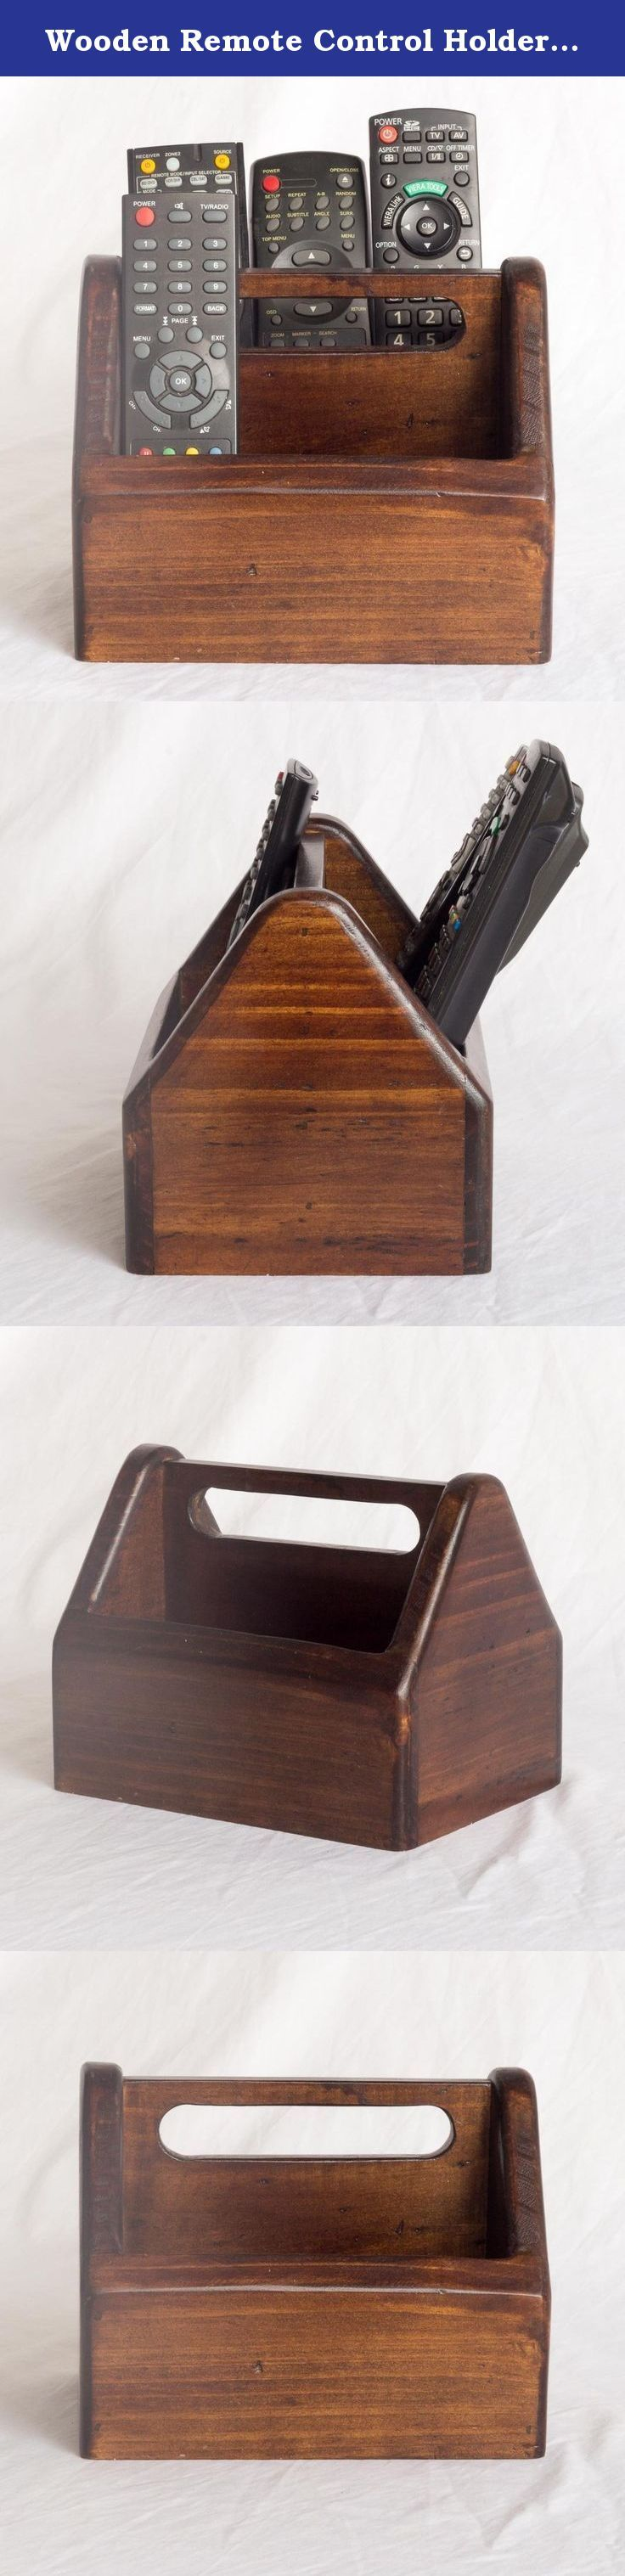 Wooden Remote Control Holder - 2 Compartments - Centre Handle. This wooden remote control holder will help organise and store the remotes for your array of home electronic devices and would suit any home or office. The remote holder has two spacious compartments that can hold three remotes each and has a centre handle for when you need to carry the holder. The design of the remote holder means that the remotes are kept in view and easily accessible also the compact shape means it doesn't...